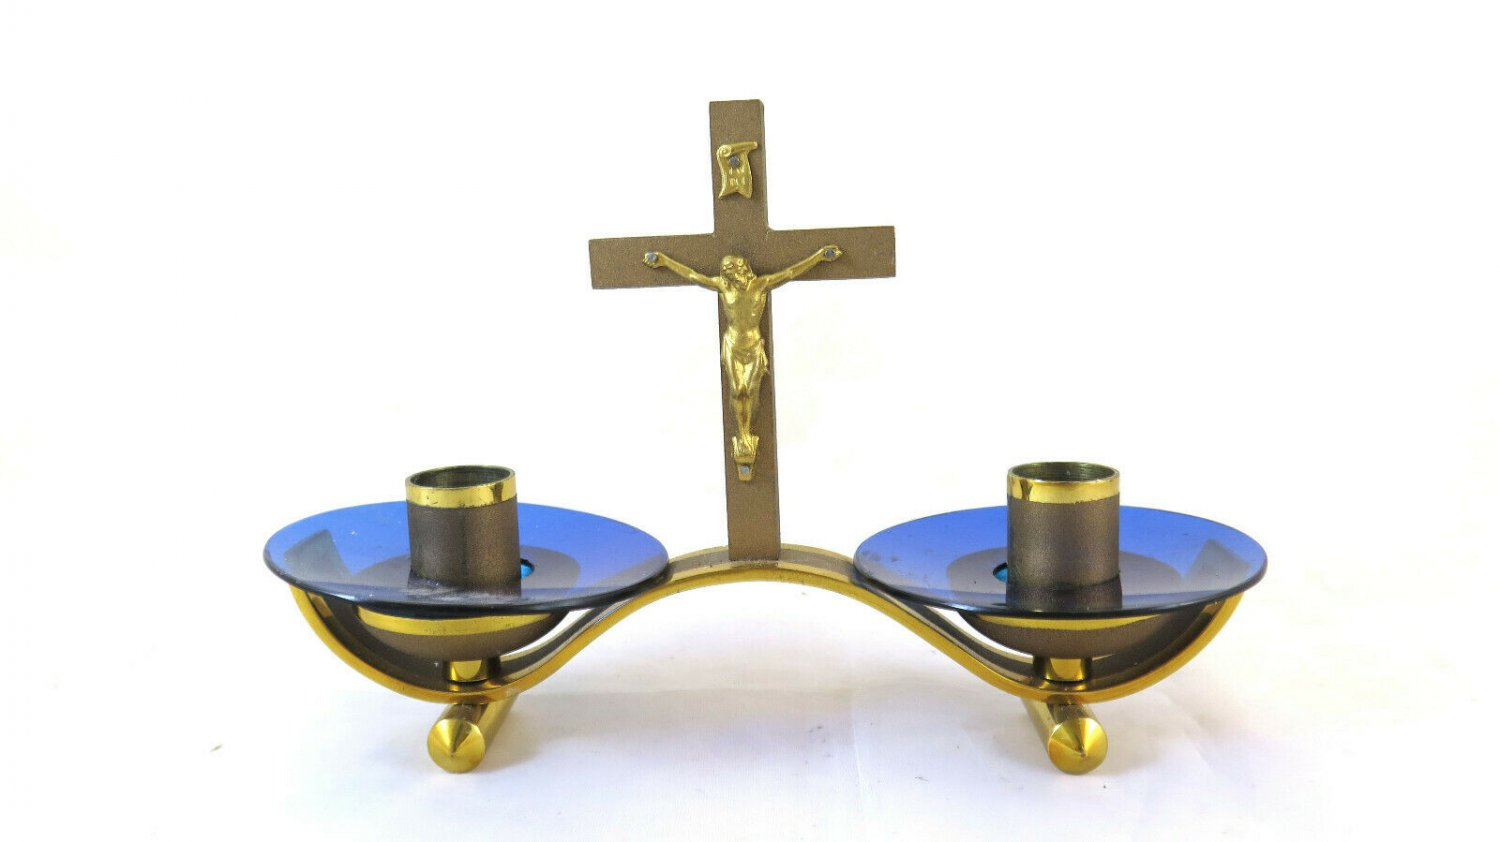 Candlestick Vintage Brass With Crucifix Small Size Candlestick GR6